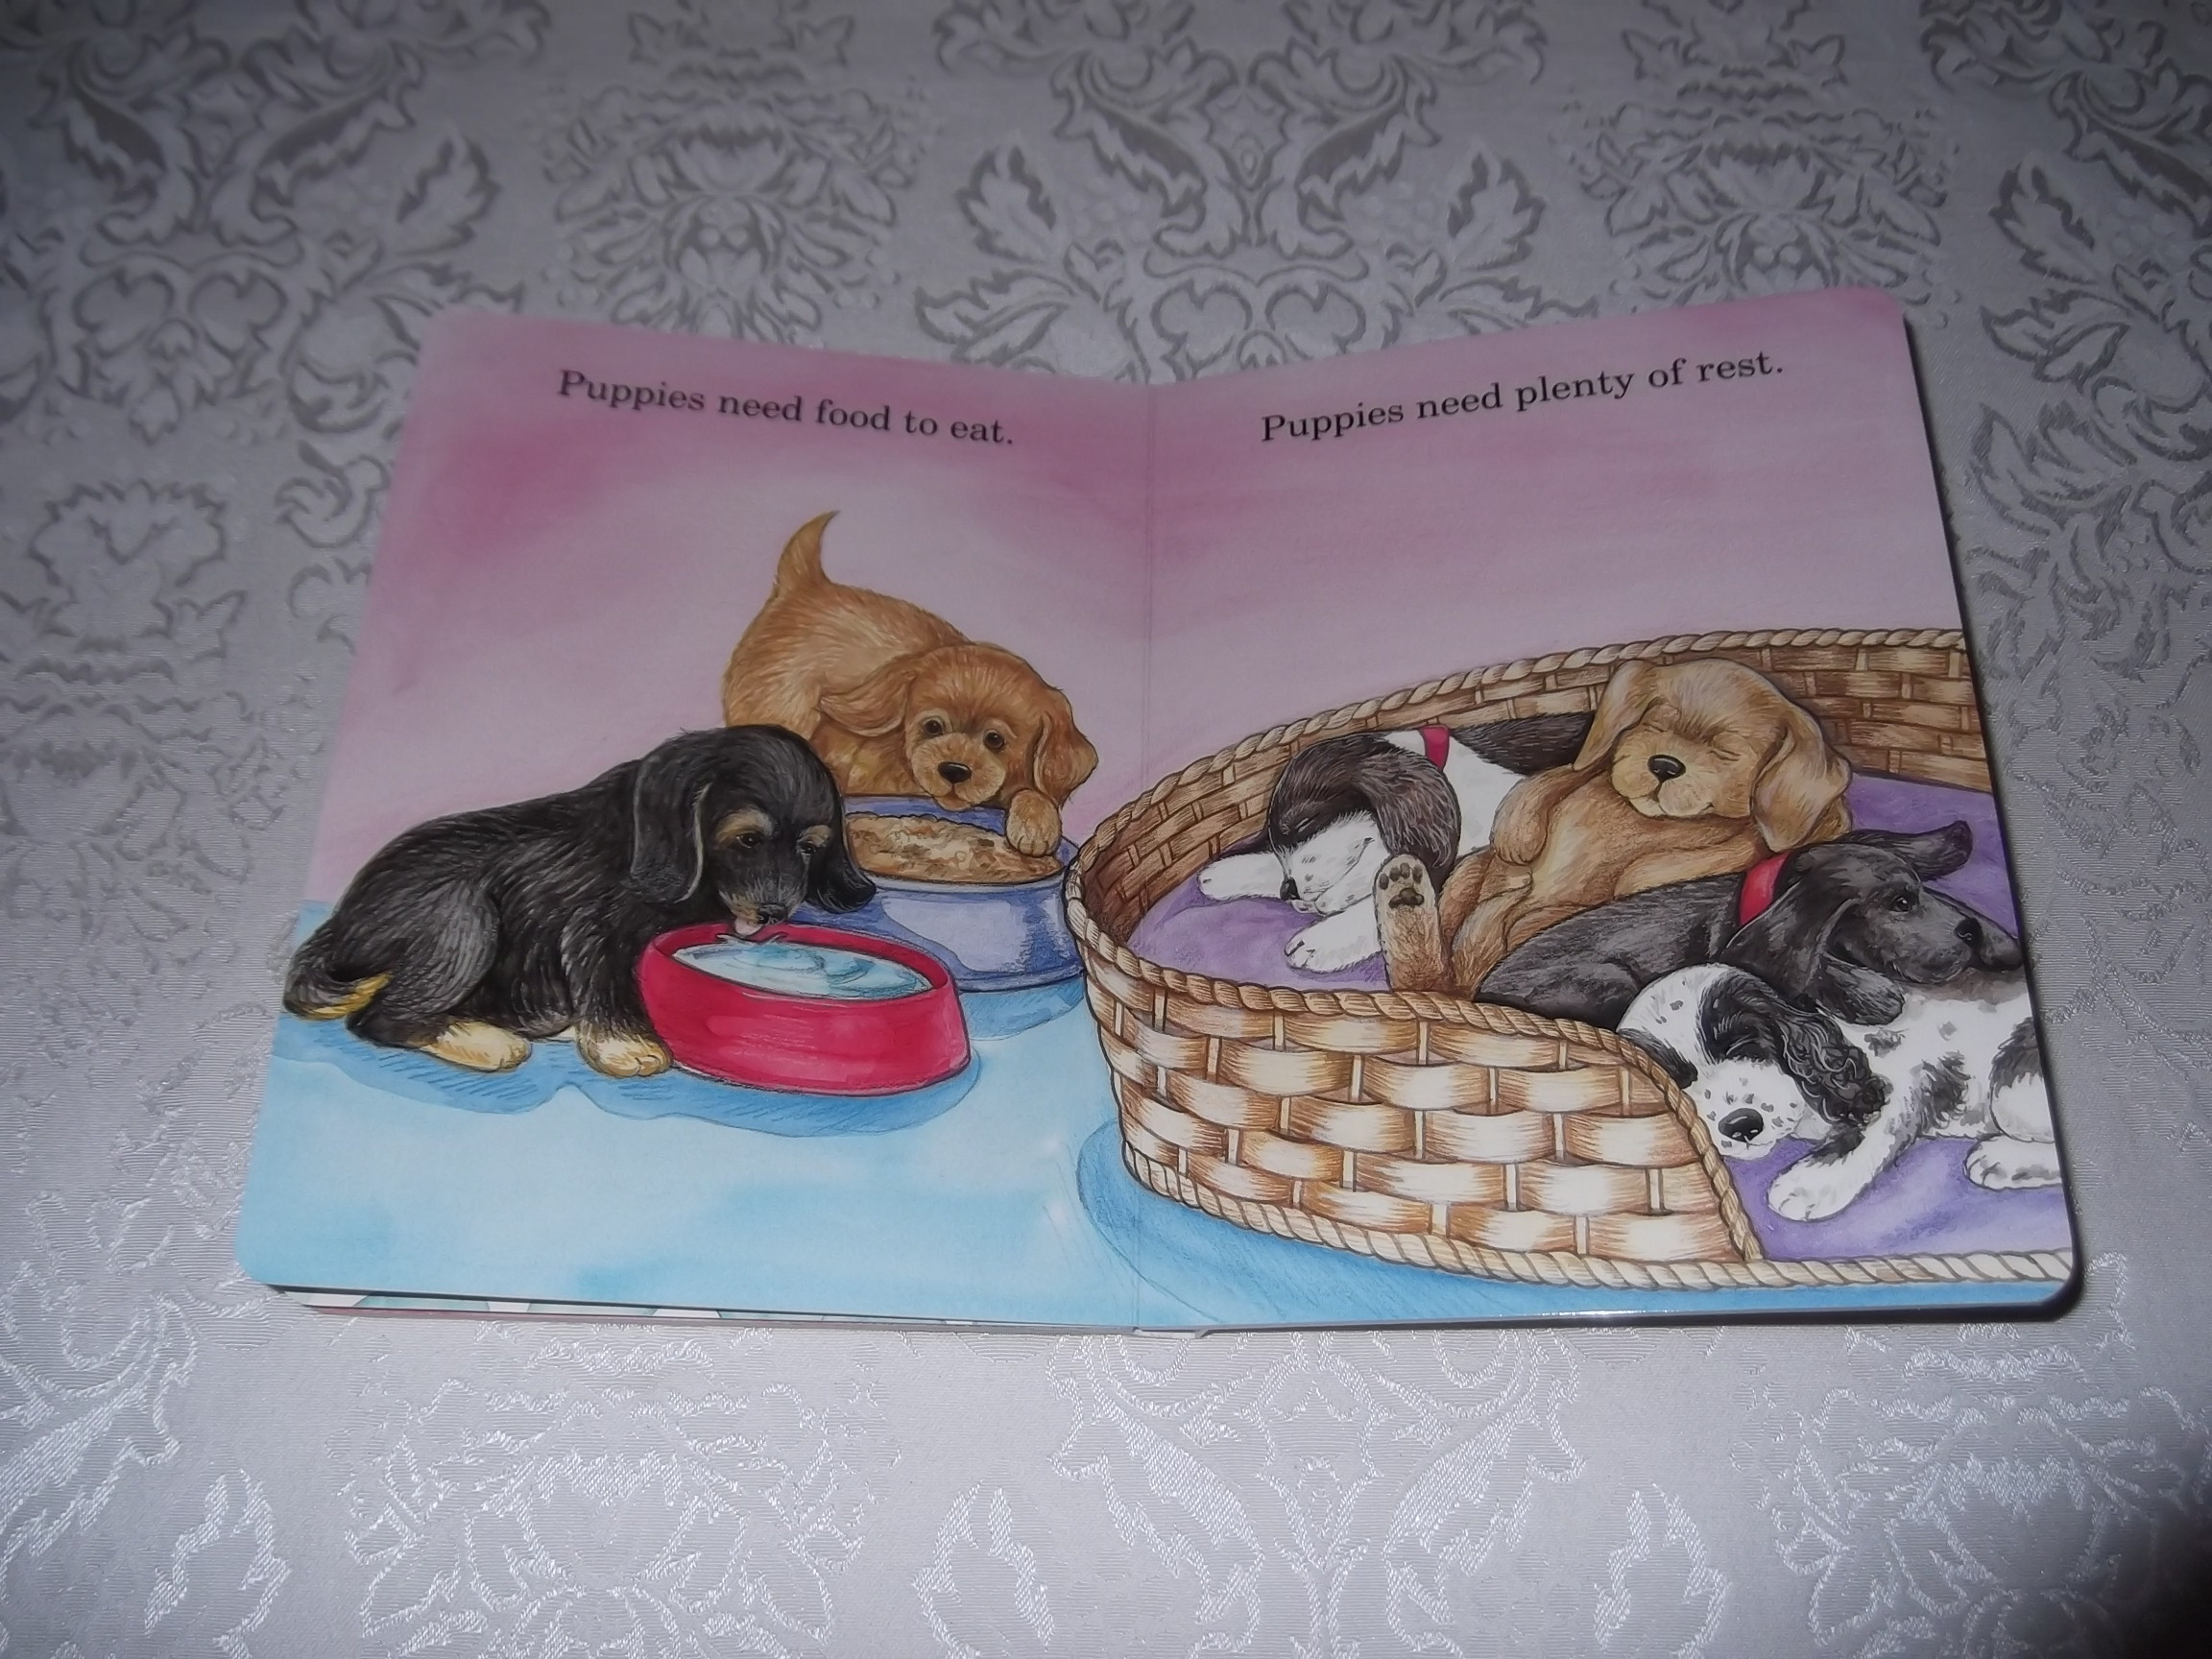 Image 6 of God Made Puppies Marian Bennet Happy Day Brand New Board Book